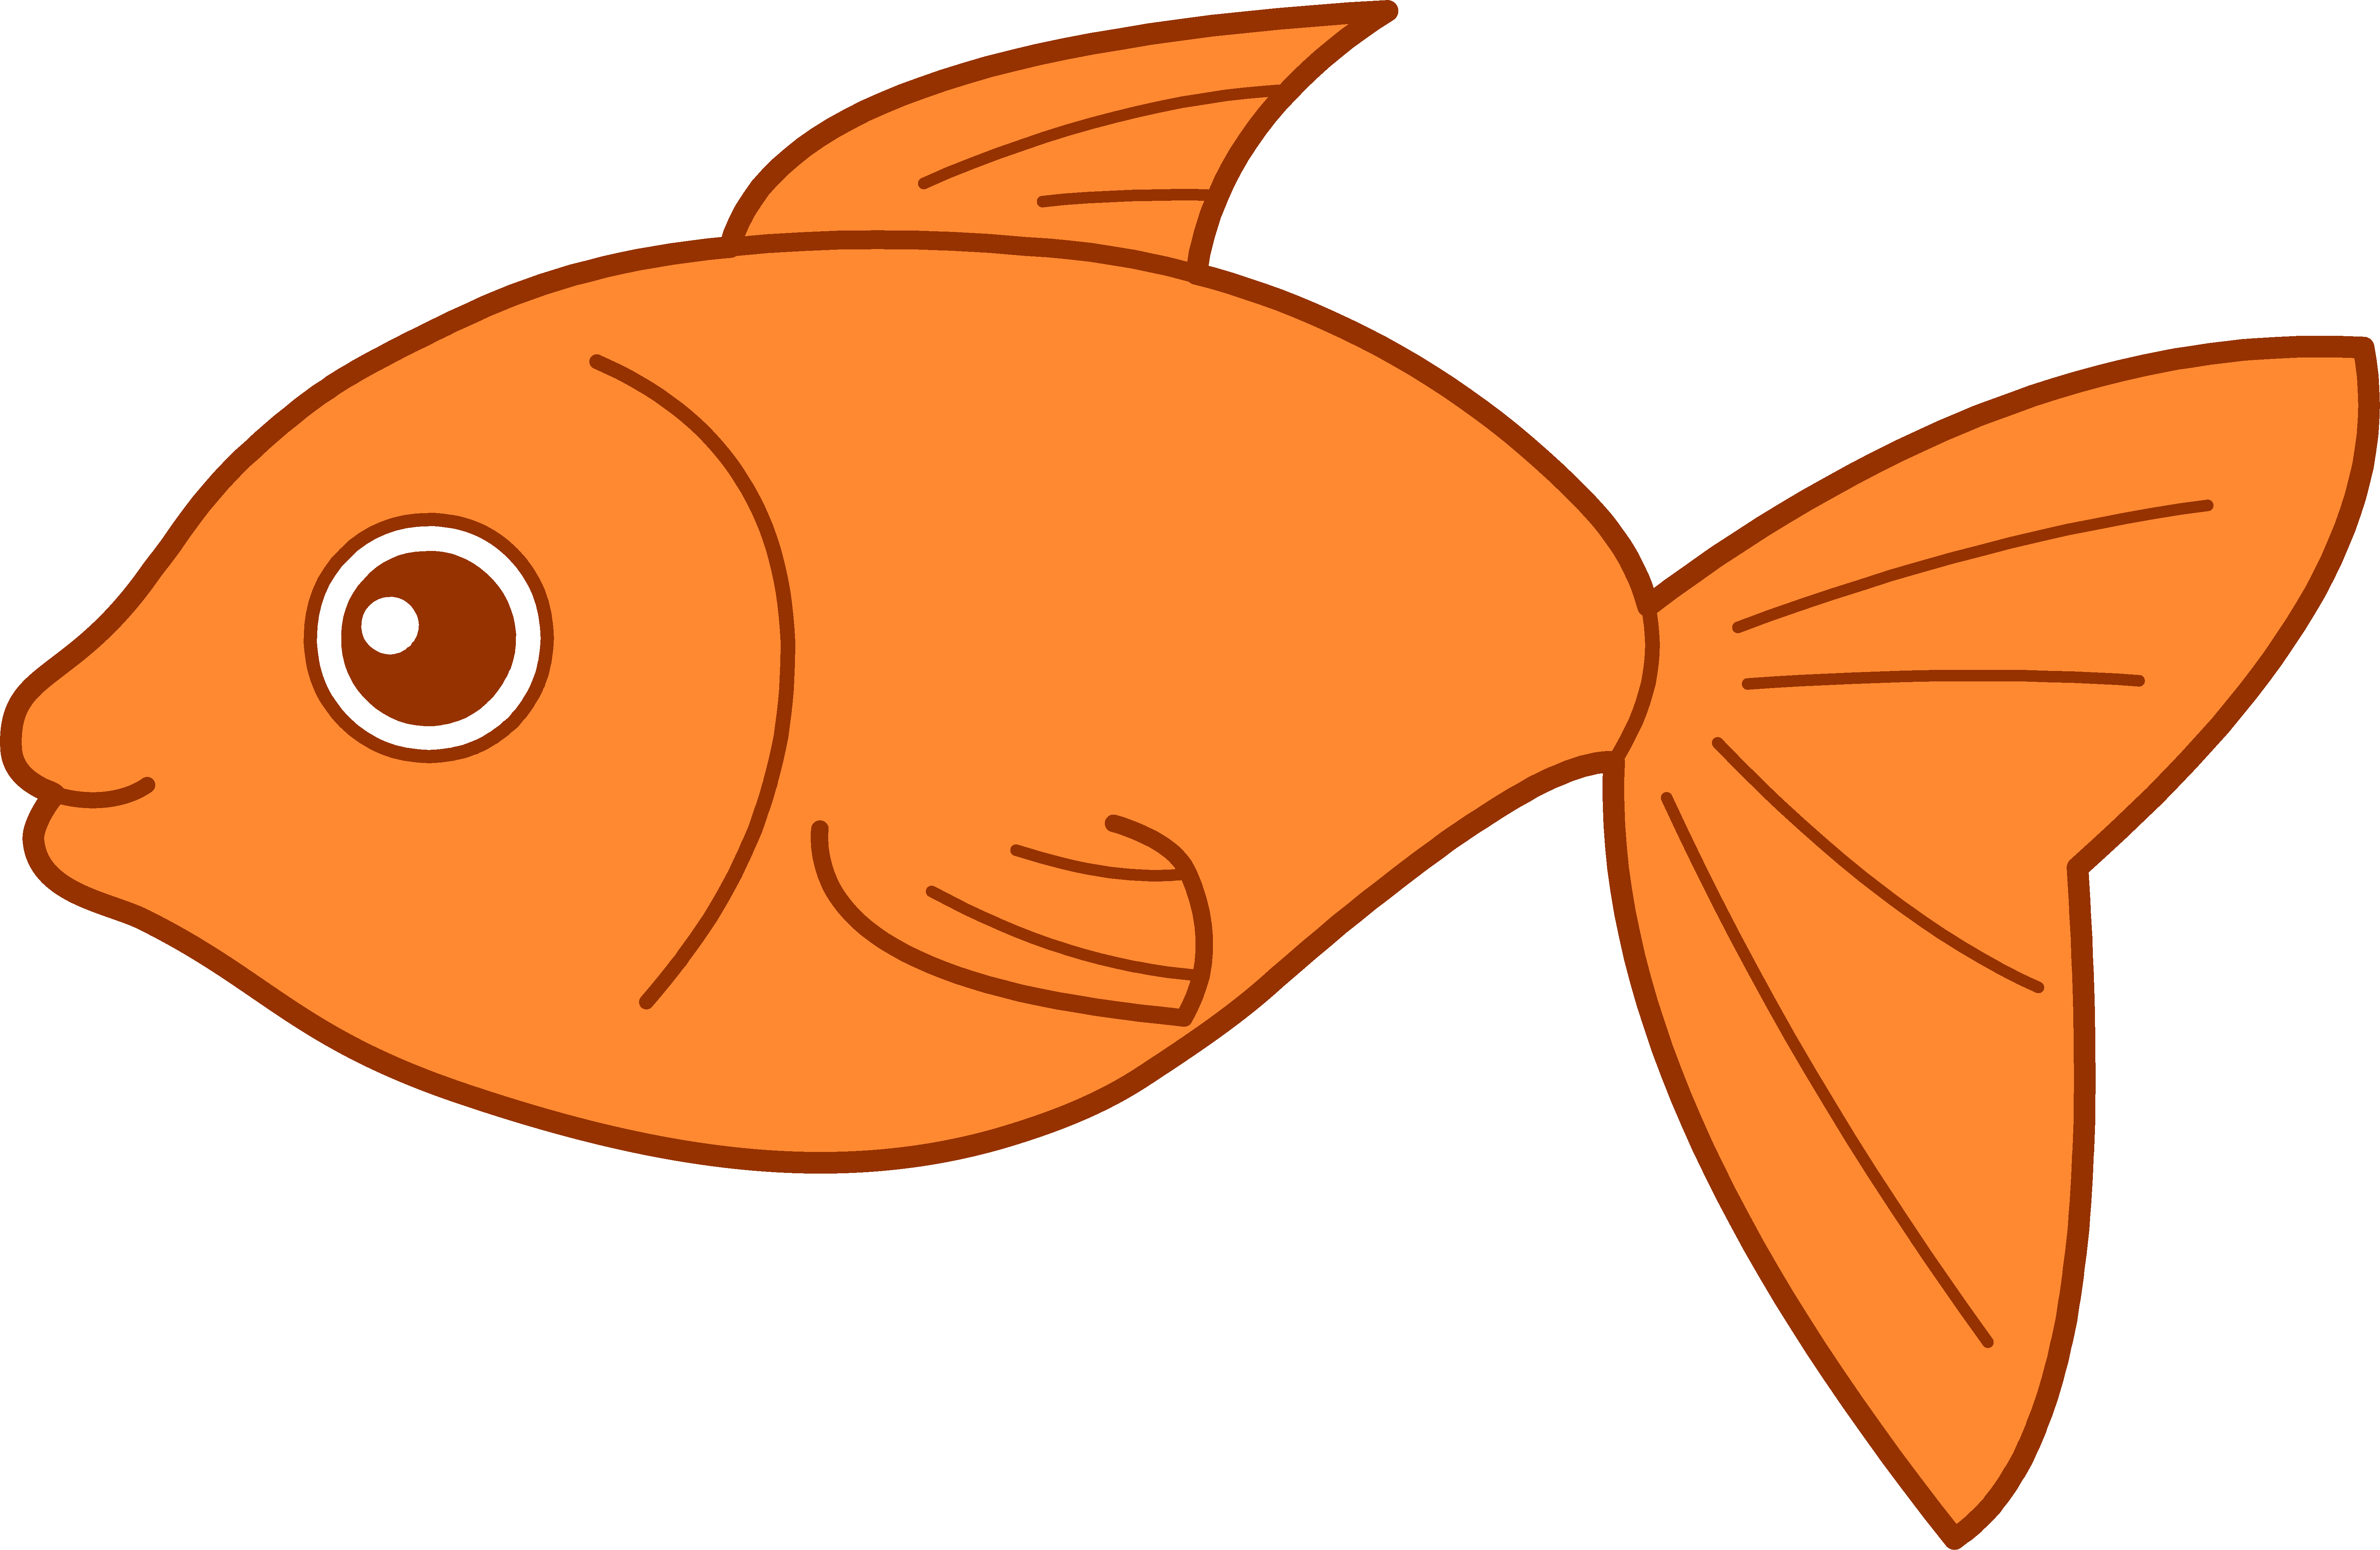 Goldfish cartoon clipart free Fishing tropical fish clip art black and white free - Clipartix ... free